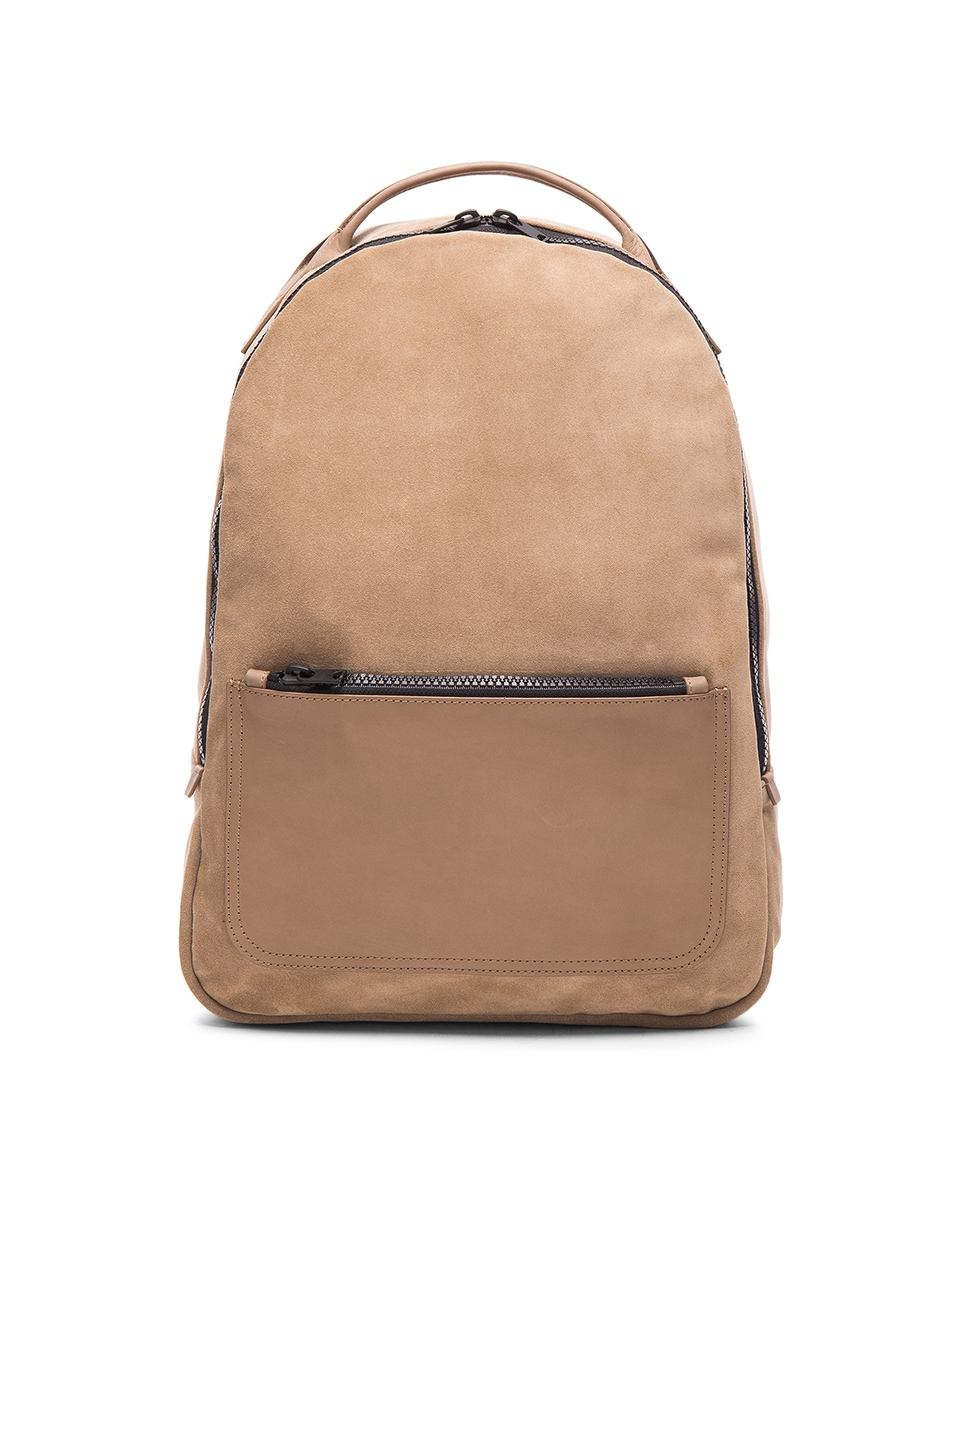 Image 1 of Kanye West x Adidas Originals Leather Backpack in Khaki